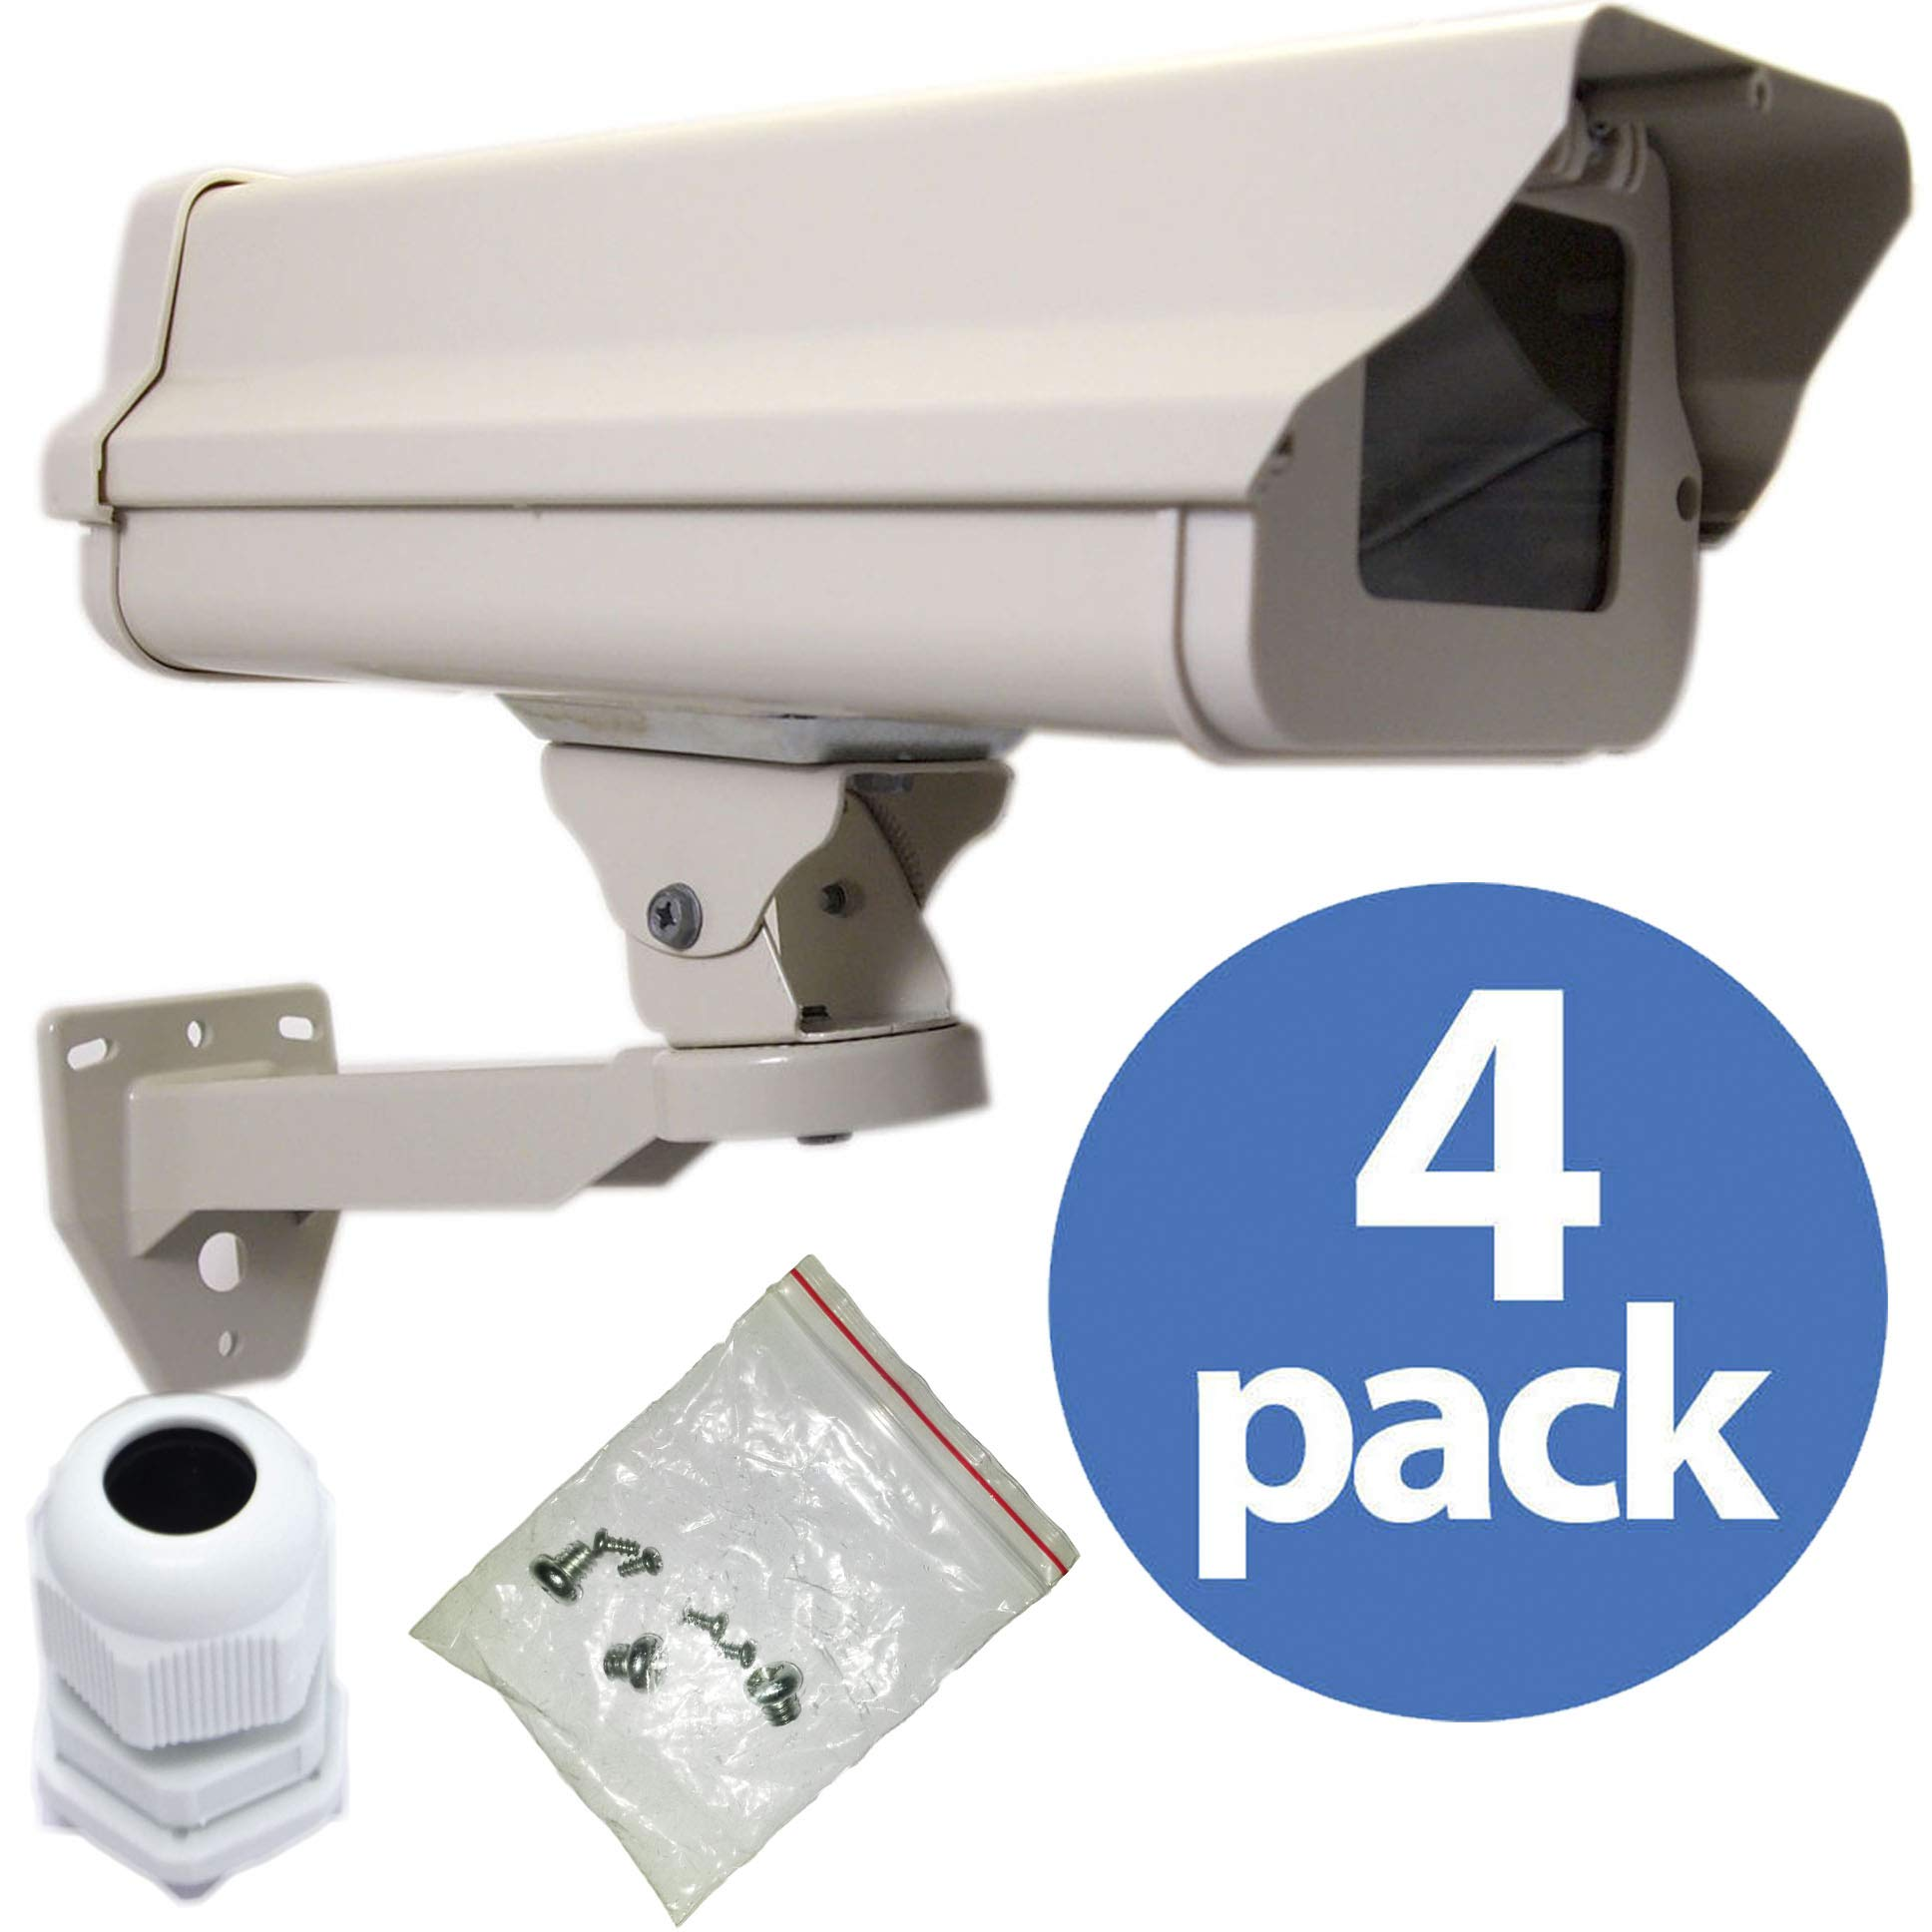 VENTECH (4 PACK) Outdoor Weatherproof Heavy Duty Aluminum CCTV housing Security Surveillance Camera Housing camera Mount Enclosure with Bracket